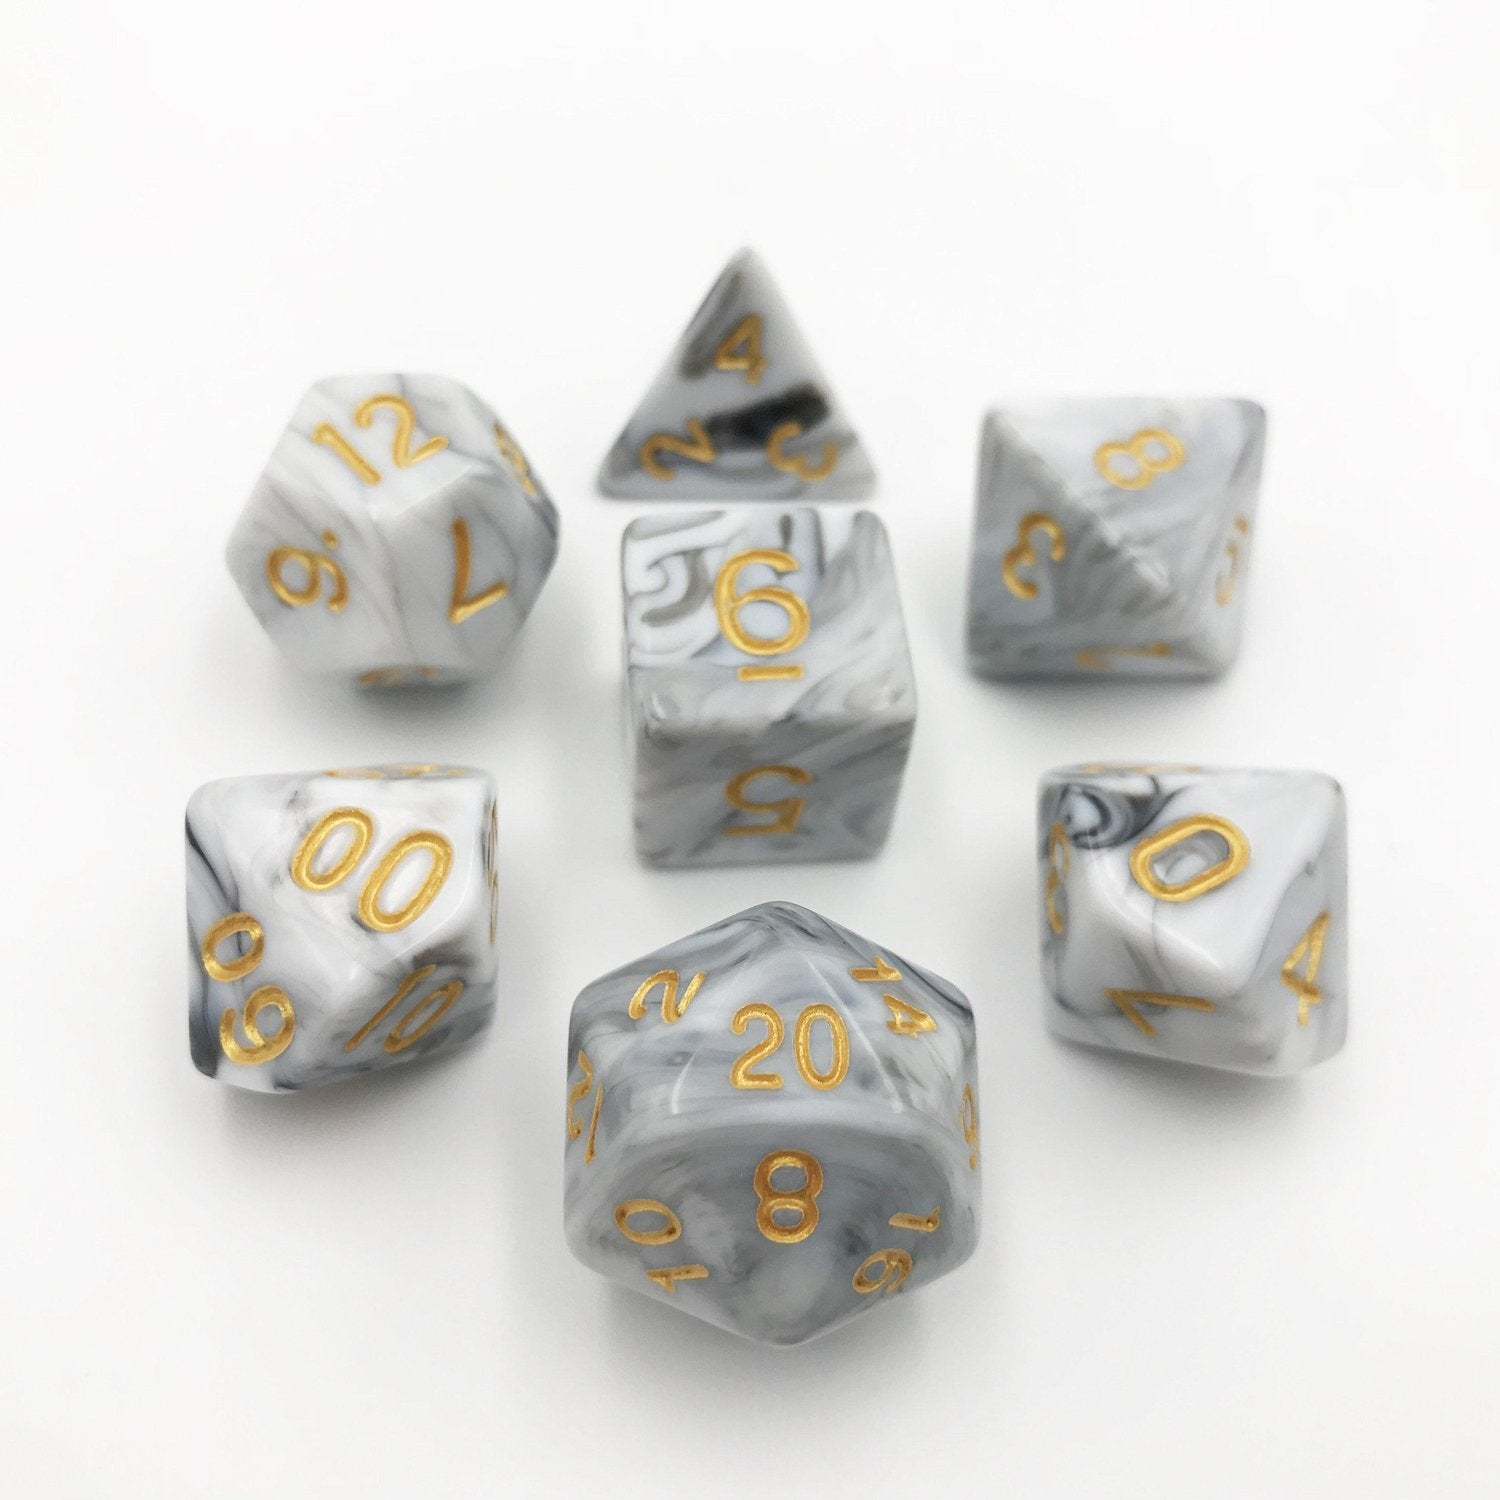 Storm - Hedronix-DnD-Dice-Dungeons and Dragons-D20 Collective